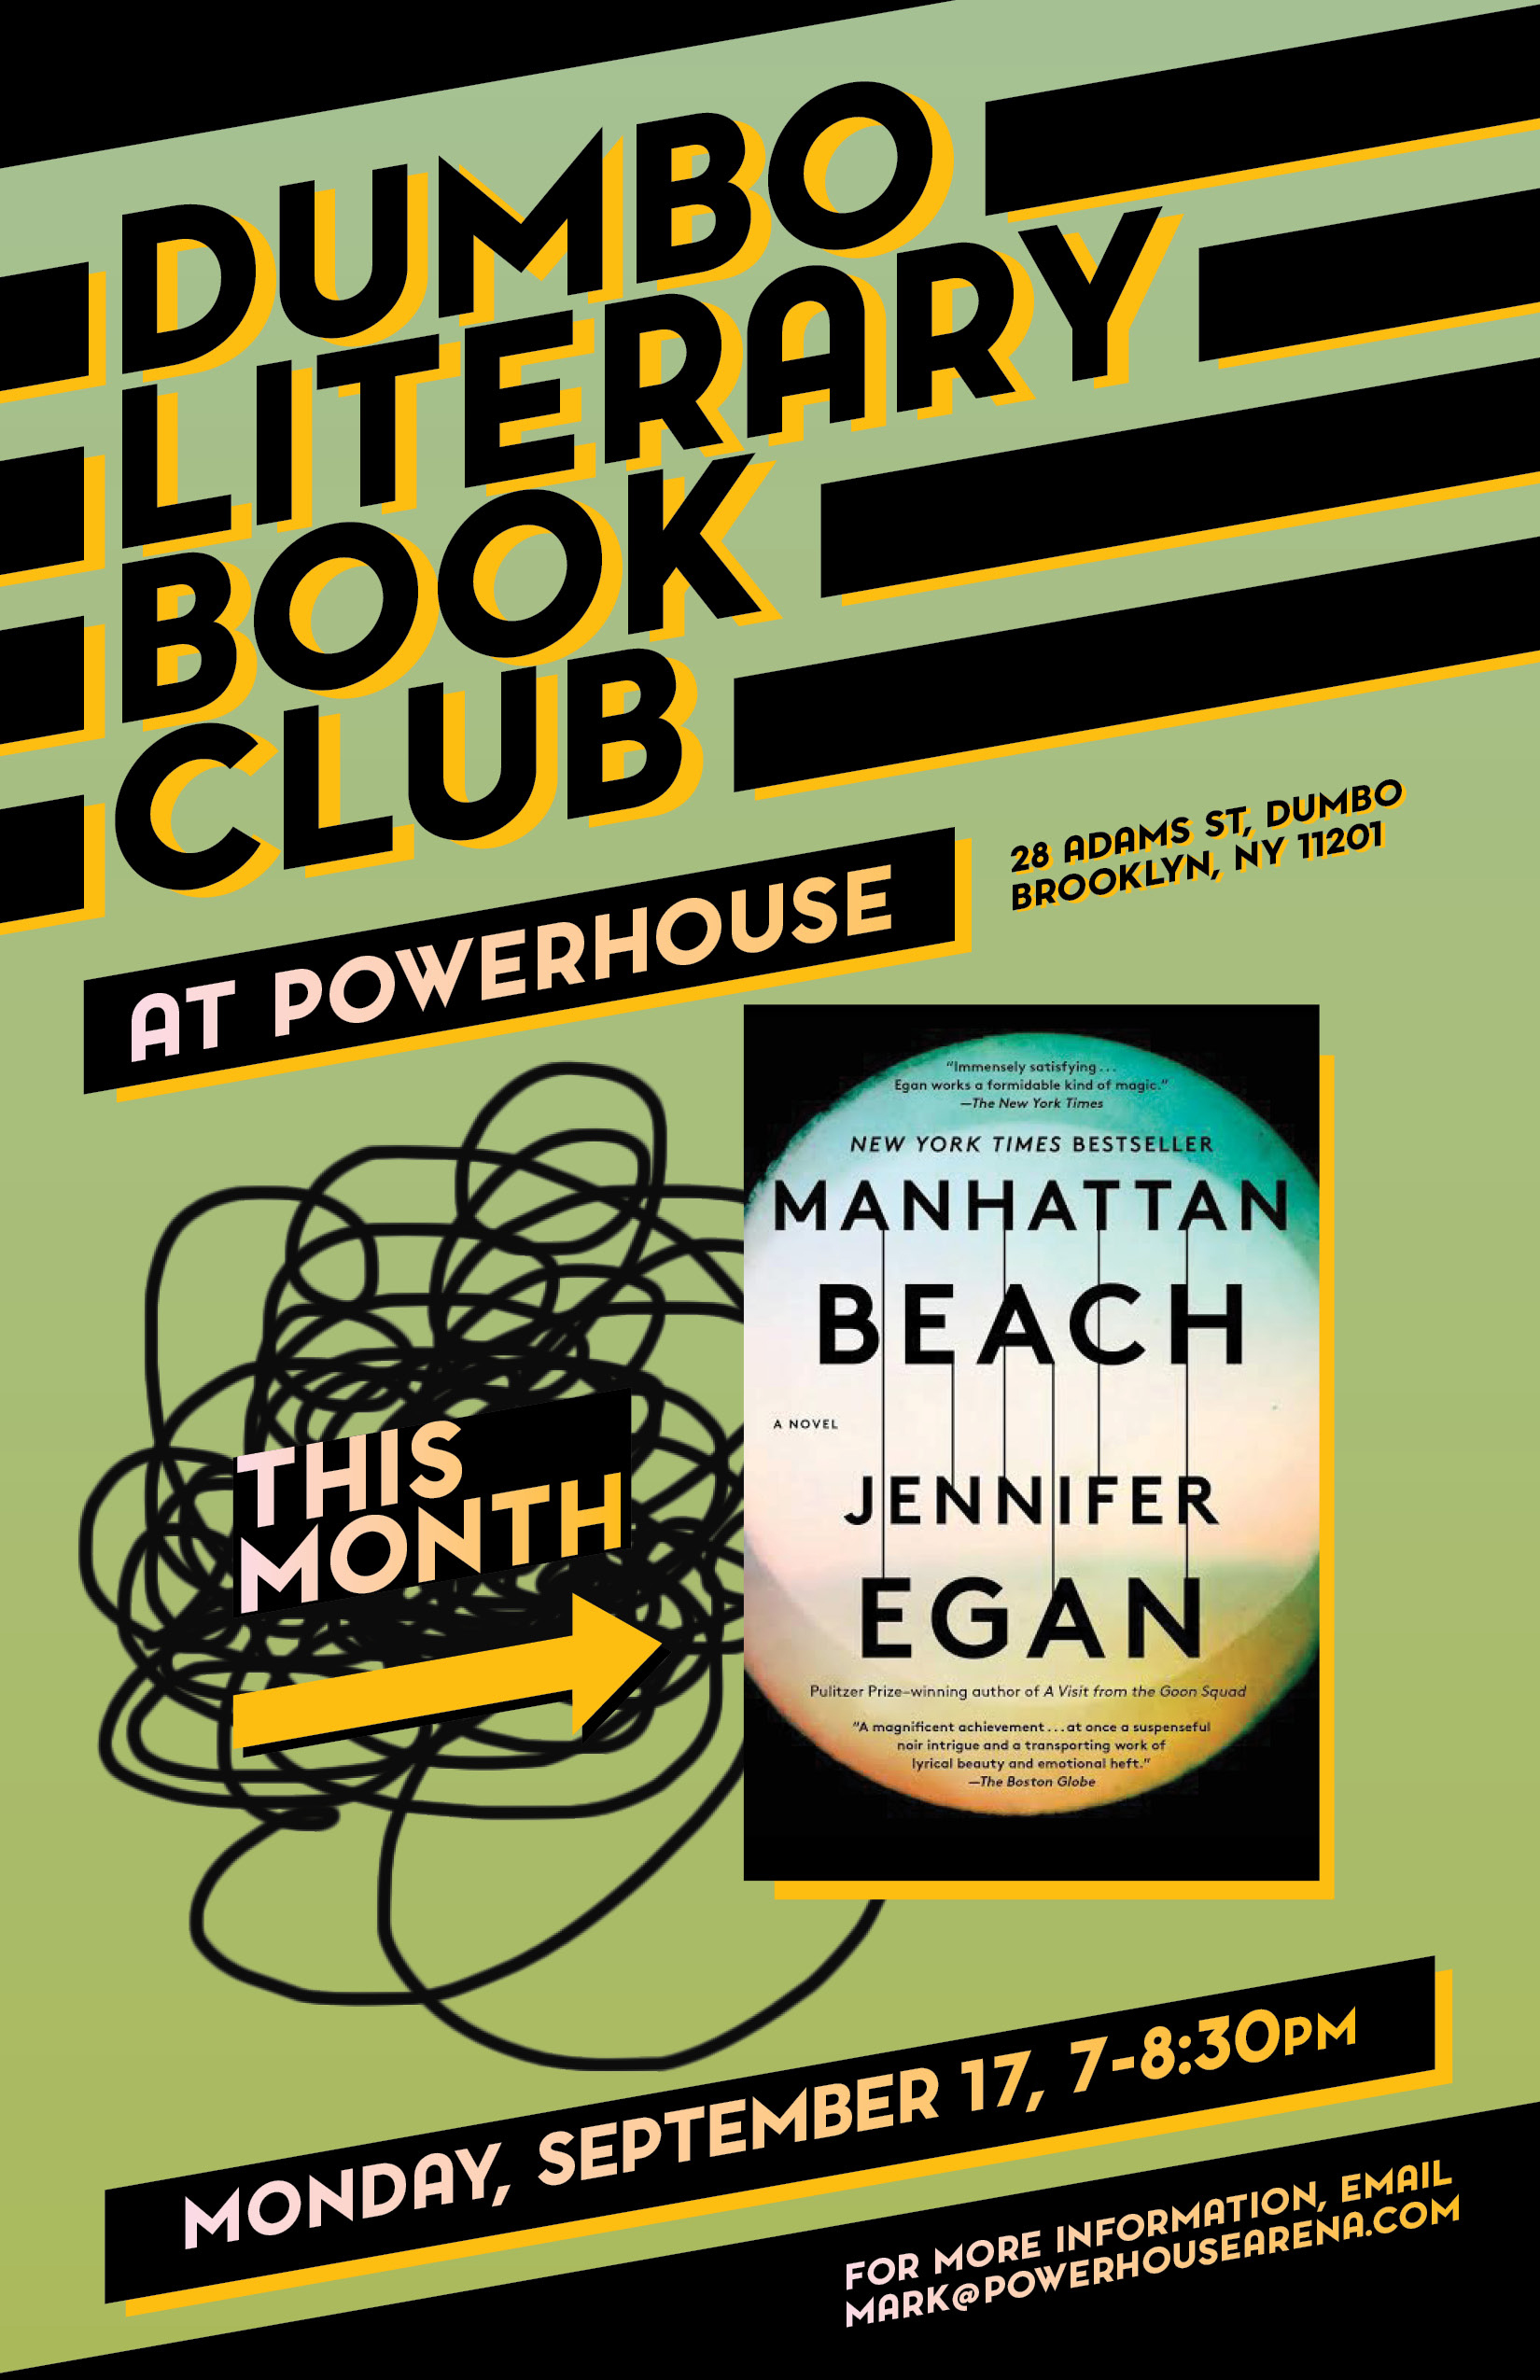 Dumbo Lit Book Club: Manhattan Beach by Jennifer Egan